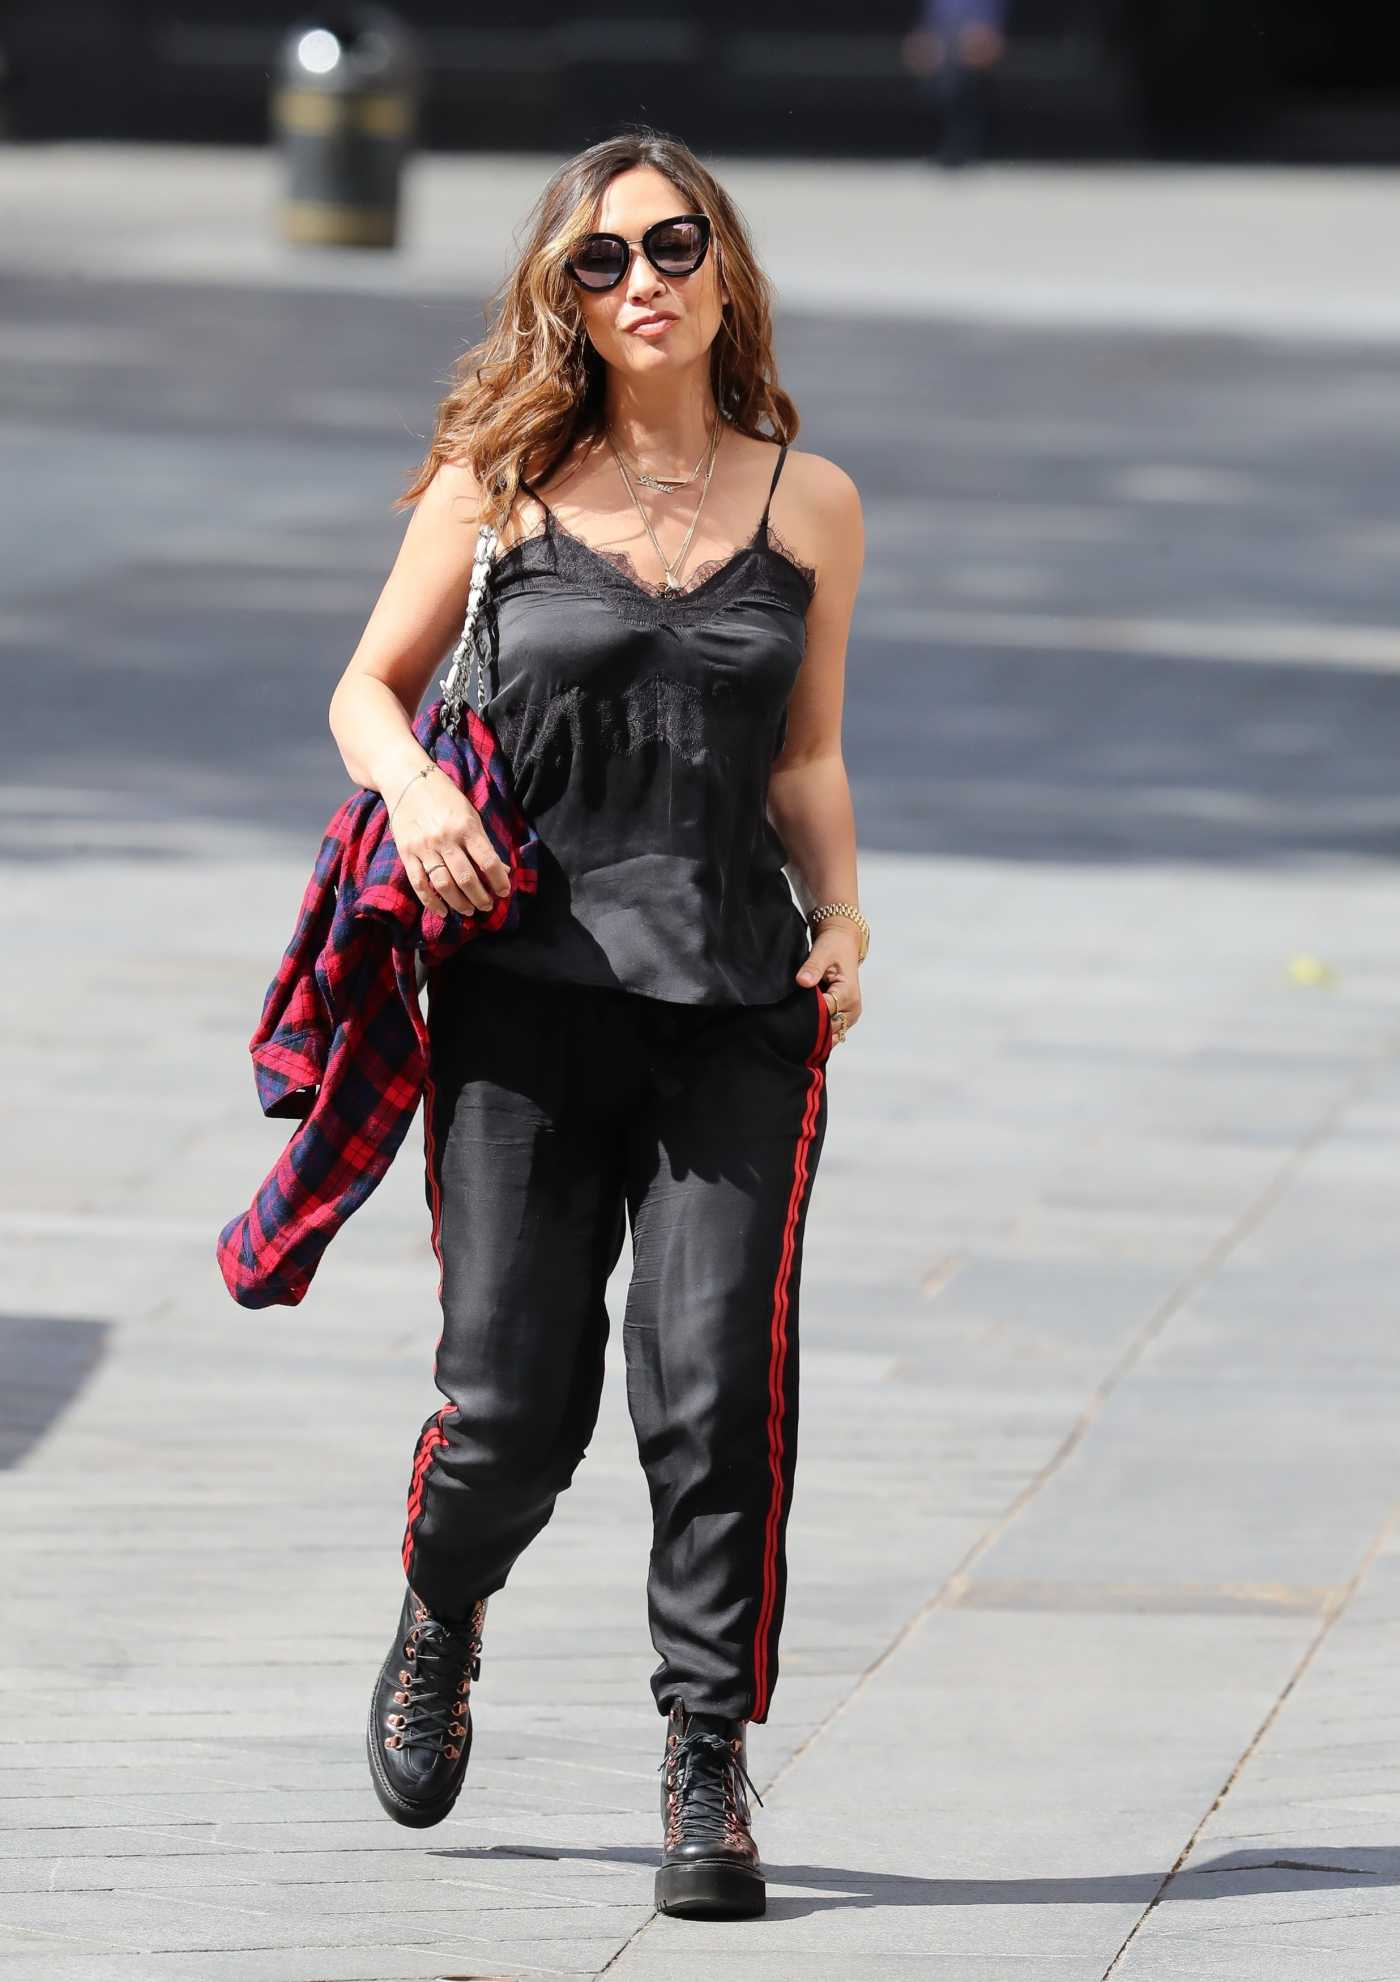 Myleene Klass in a Black Top Arrives at the Global Offices in London 05/23/2020